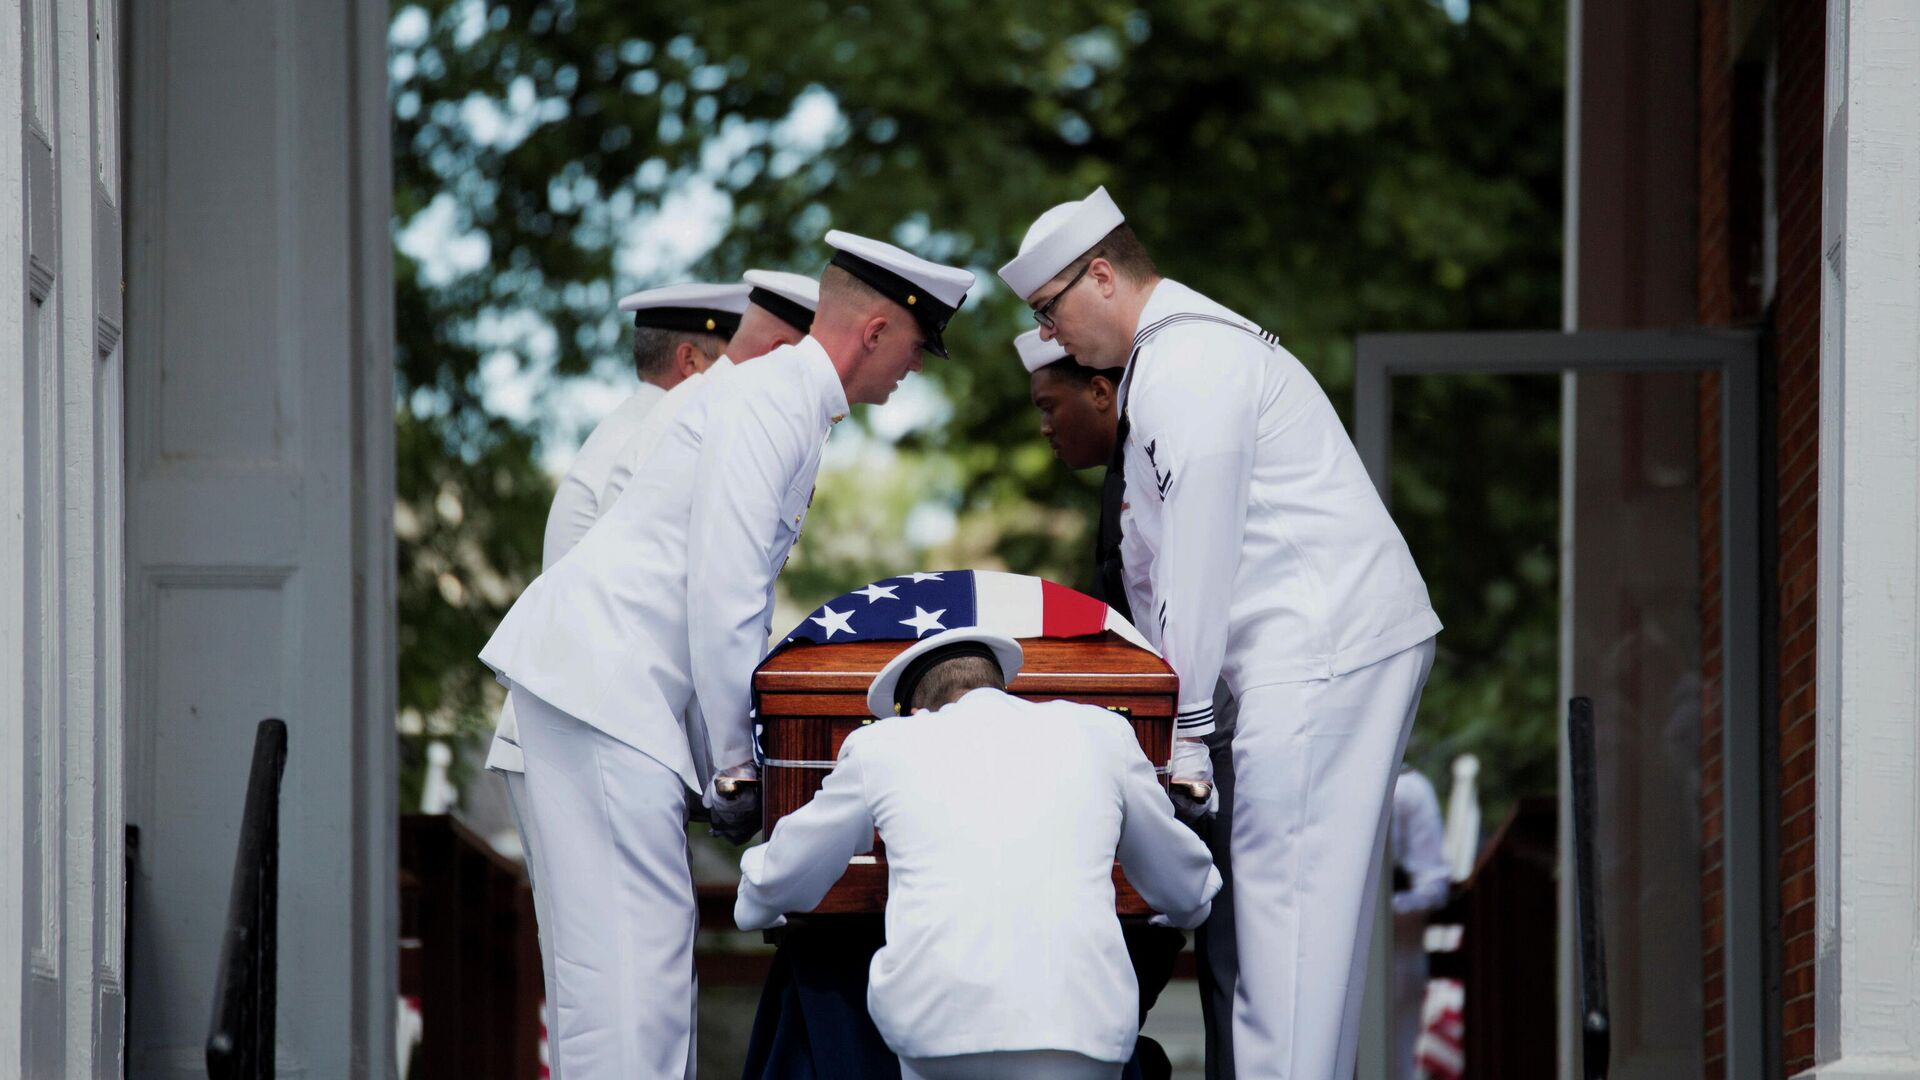 Members of the military carry the remains of U.S. Navy Corpsman Max Soviak, one of 13 U.S. service members killed in the airport suicide bombing in Afghanistan's capital Kabul, as they are returned to his hometown of Berlin Heights, Ohio, U.S., September 8, 2021 - Sputnik International, 1920, 28.09.2021